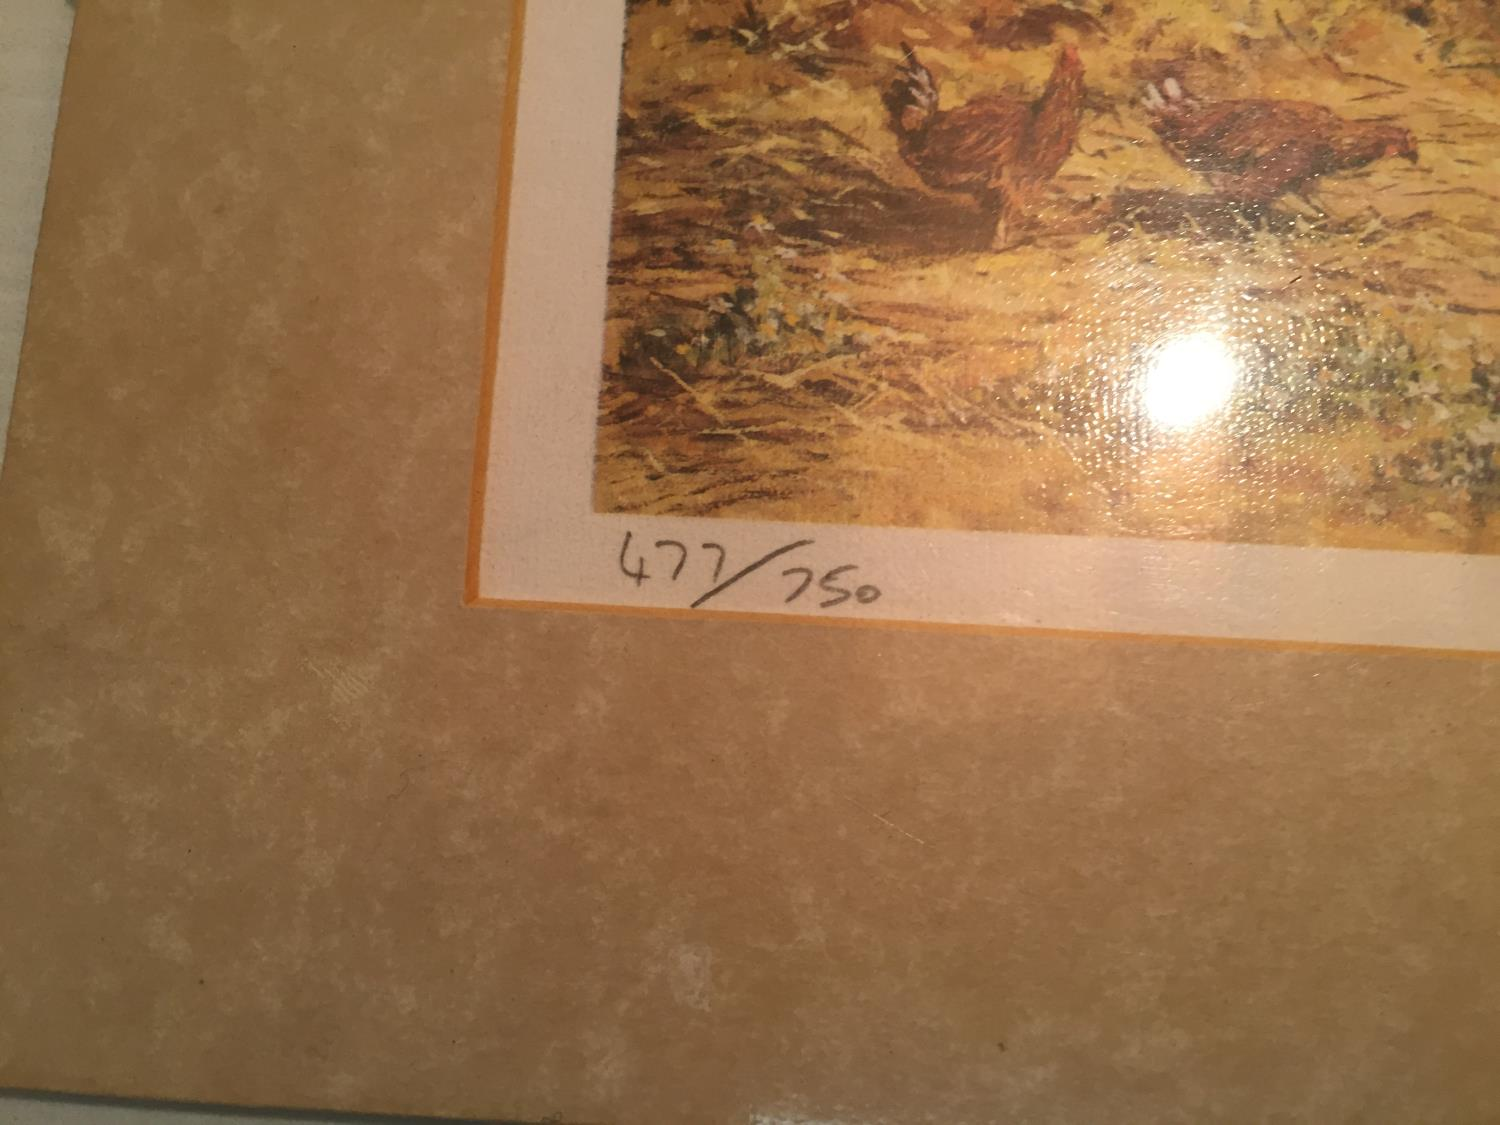 THREE MOUNTED SIGNED PRINTS OF FARM SCENES IN A HARDBACK PROTECTIVE FOLDER - Image 12 of 12